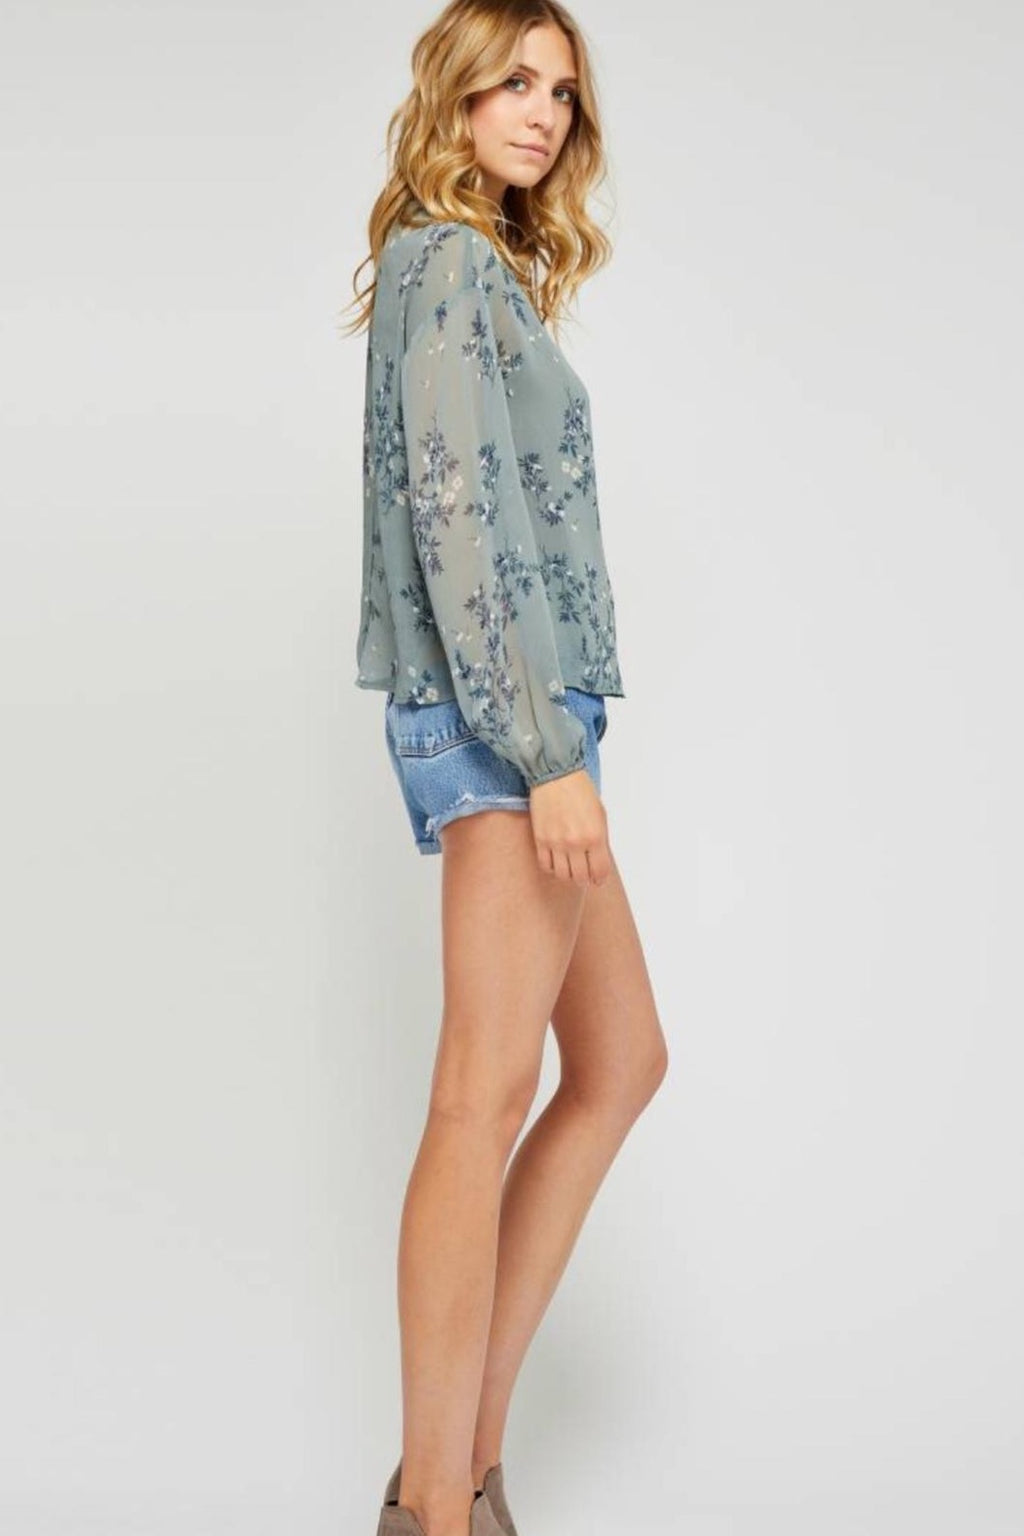 Gentle Fawn Floral Blouse